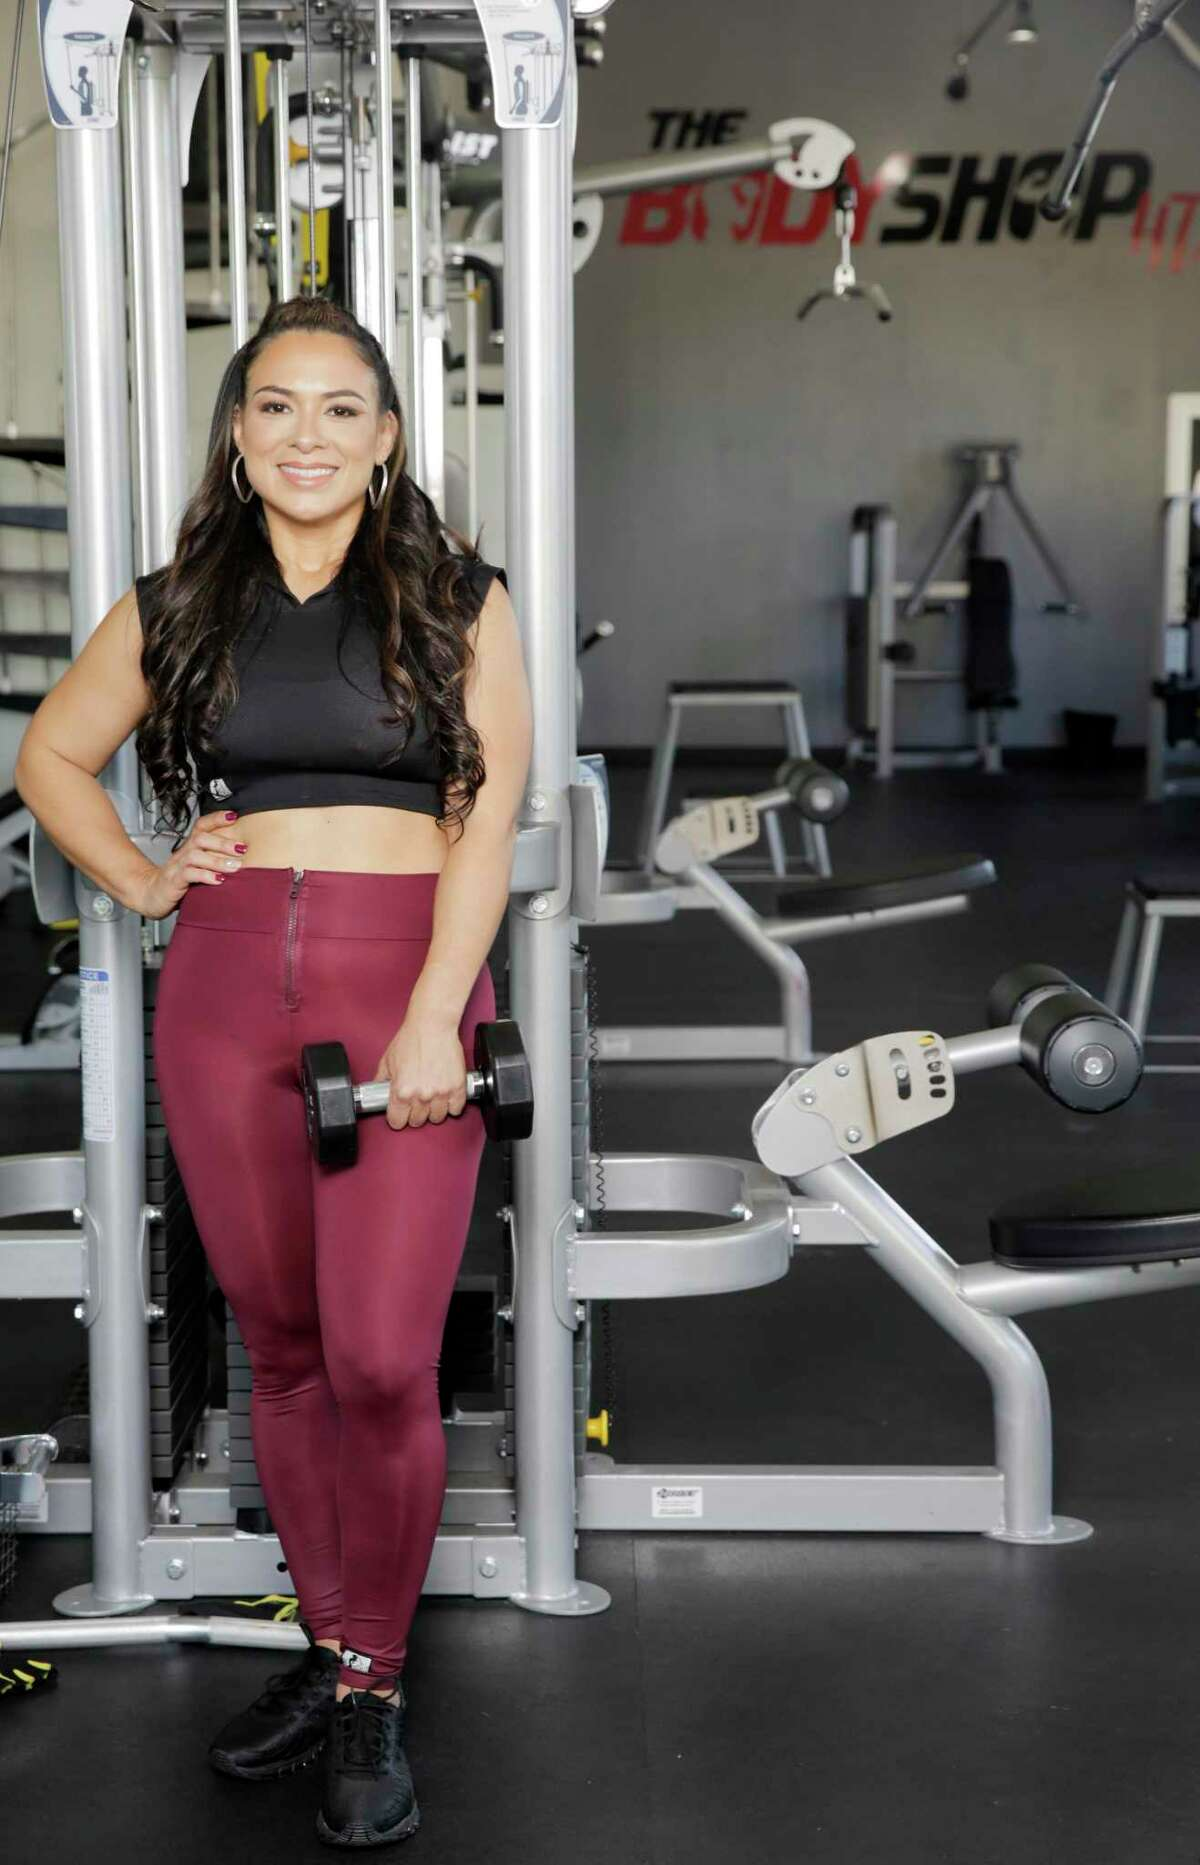 """Cintia Guerra, 40, at her gym, The Body Shop HTX. """"I had to learn to give myself grace,"""" she said of her fitness journey, in which she has lost 40 pounds."""